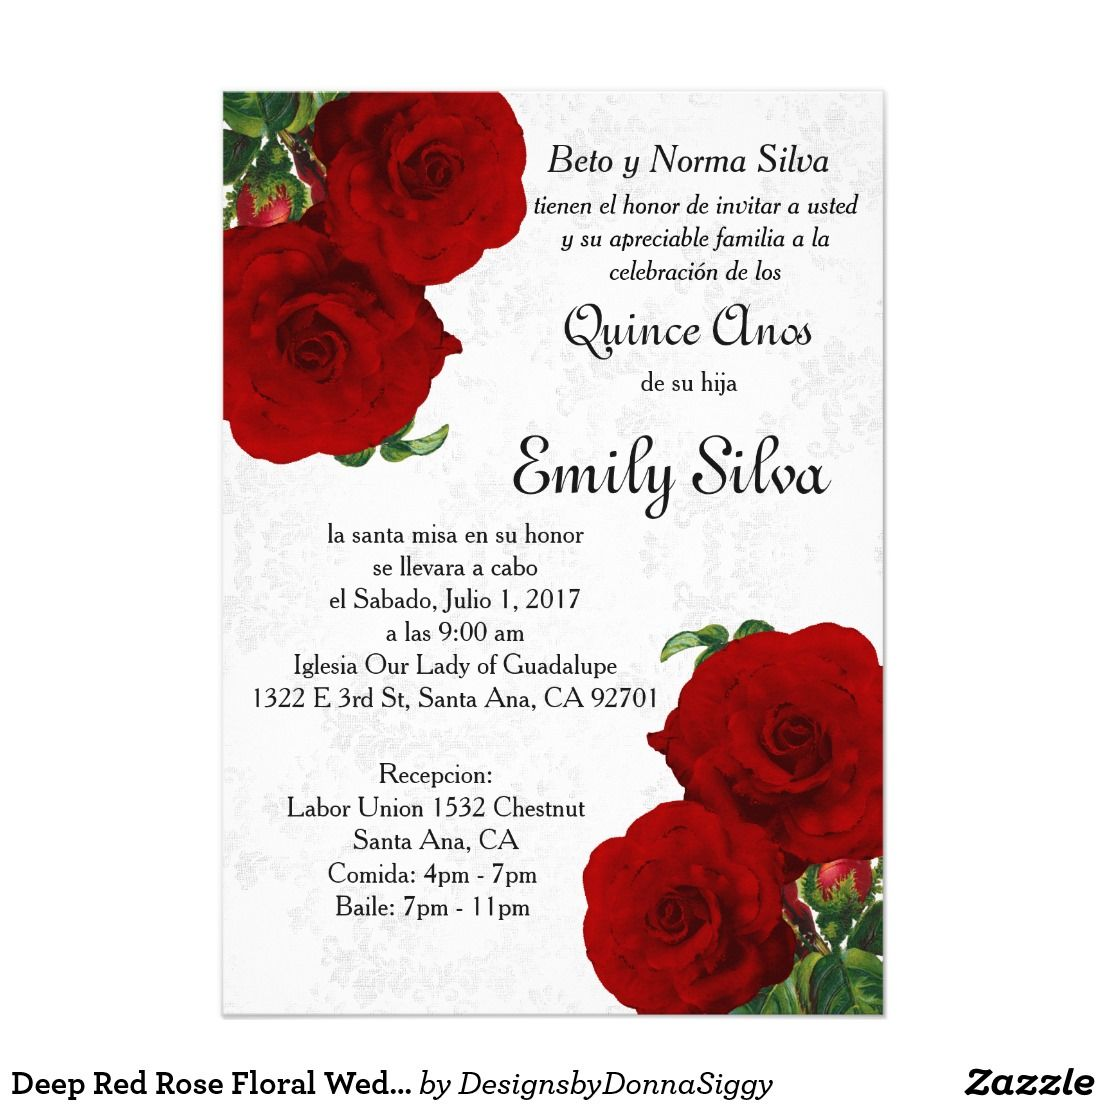 Deep Red Rose Floral Wedding Invitation | Bride | Pinterest | Floral ...